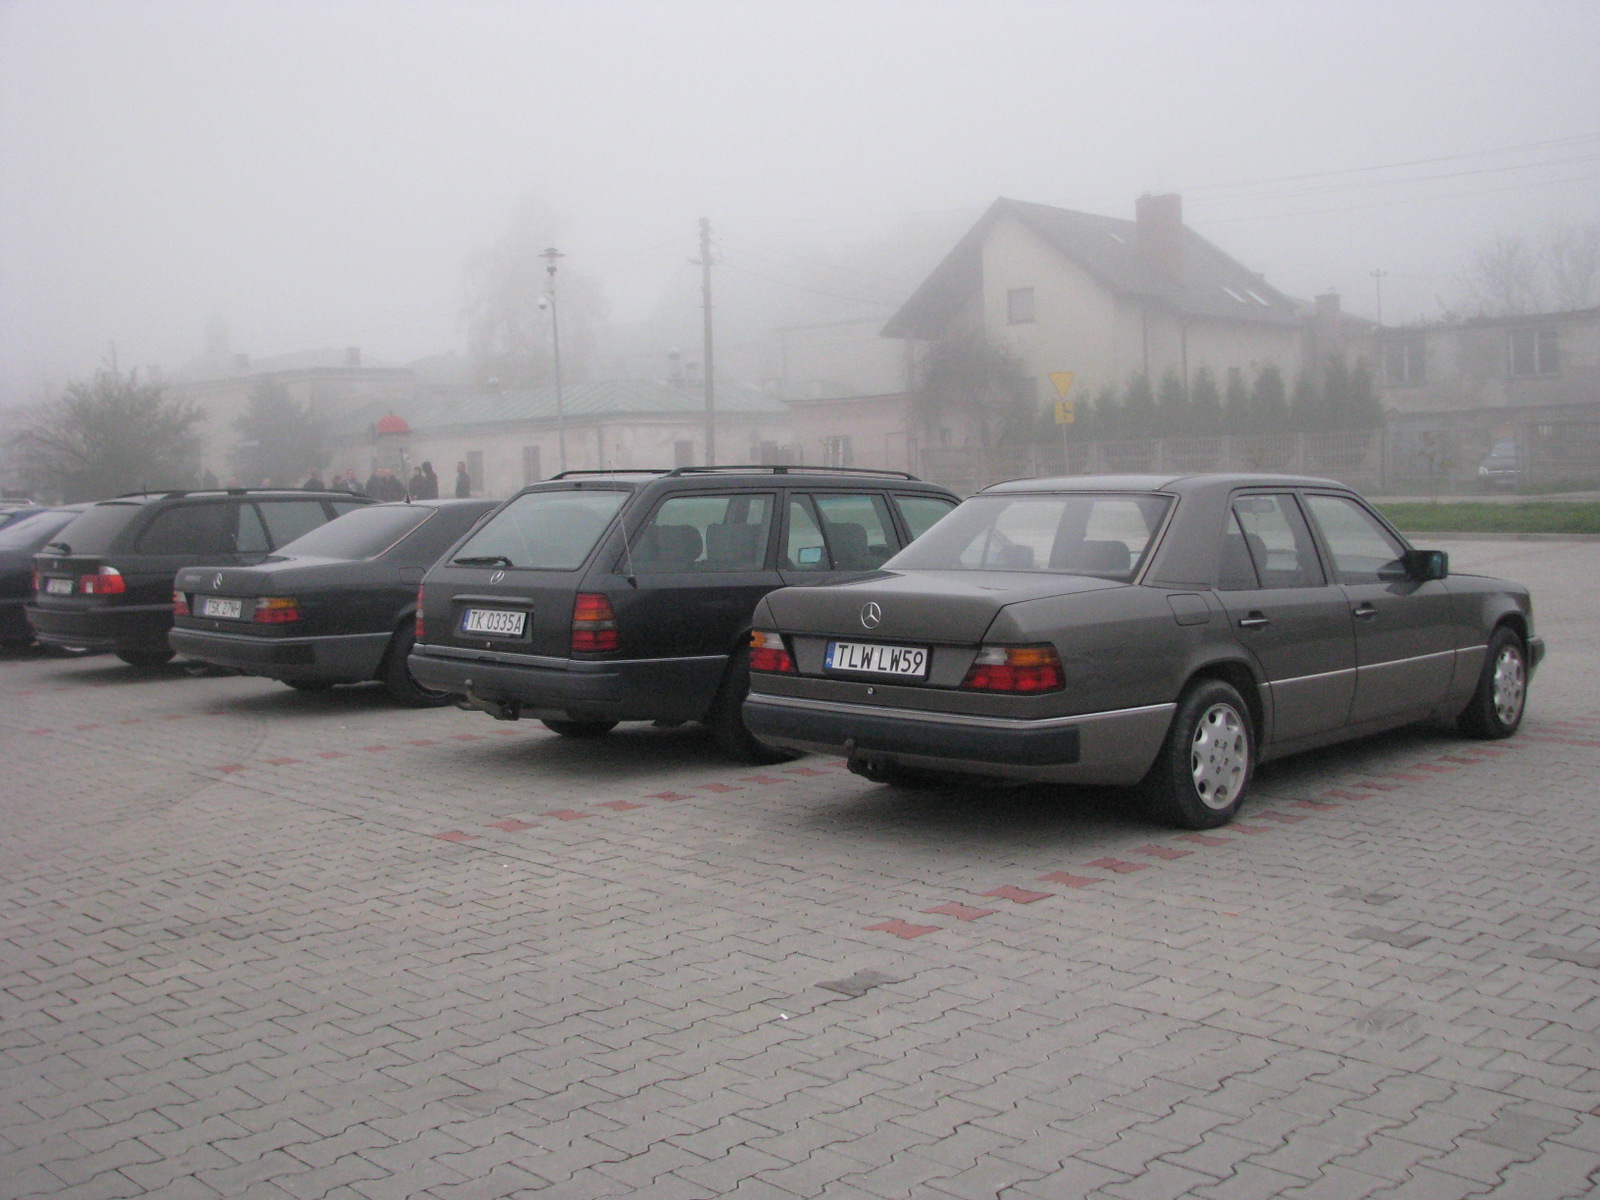 http://124coupe.pl/hosting/images/img001cdc.jpg